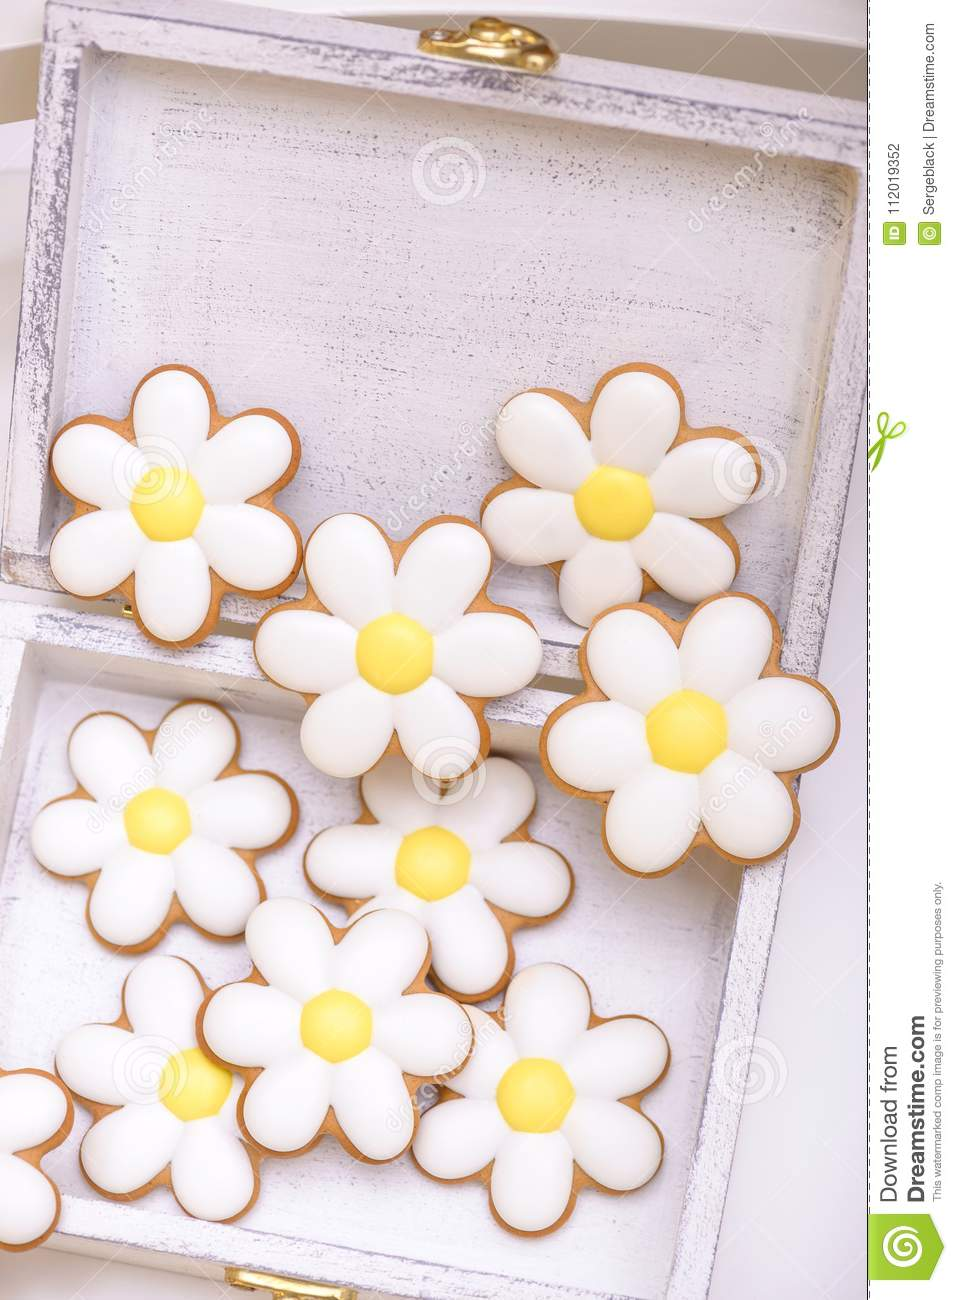 Gingerbread cookies in the shape of chamomile